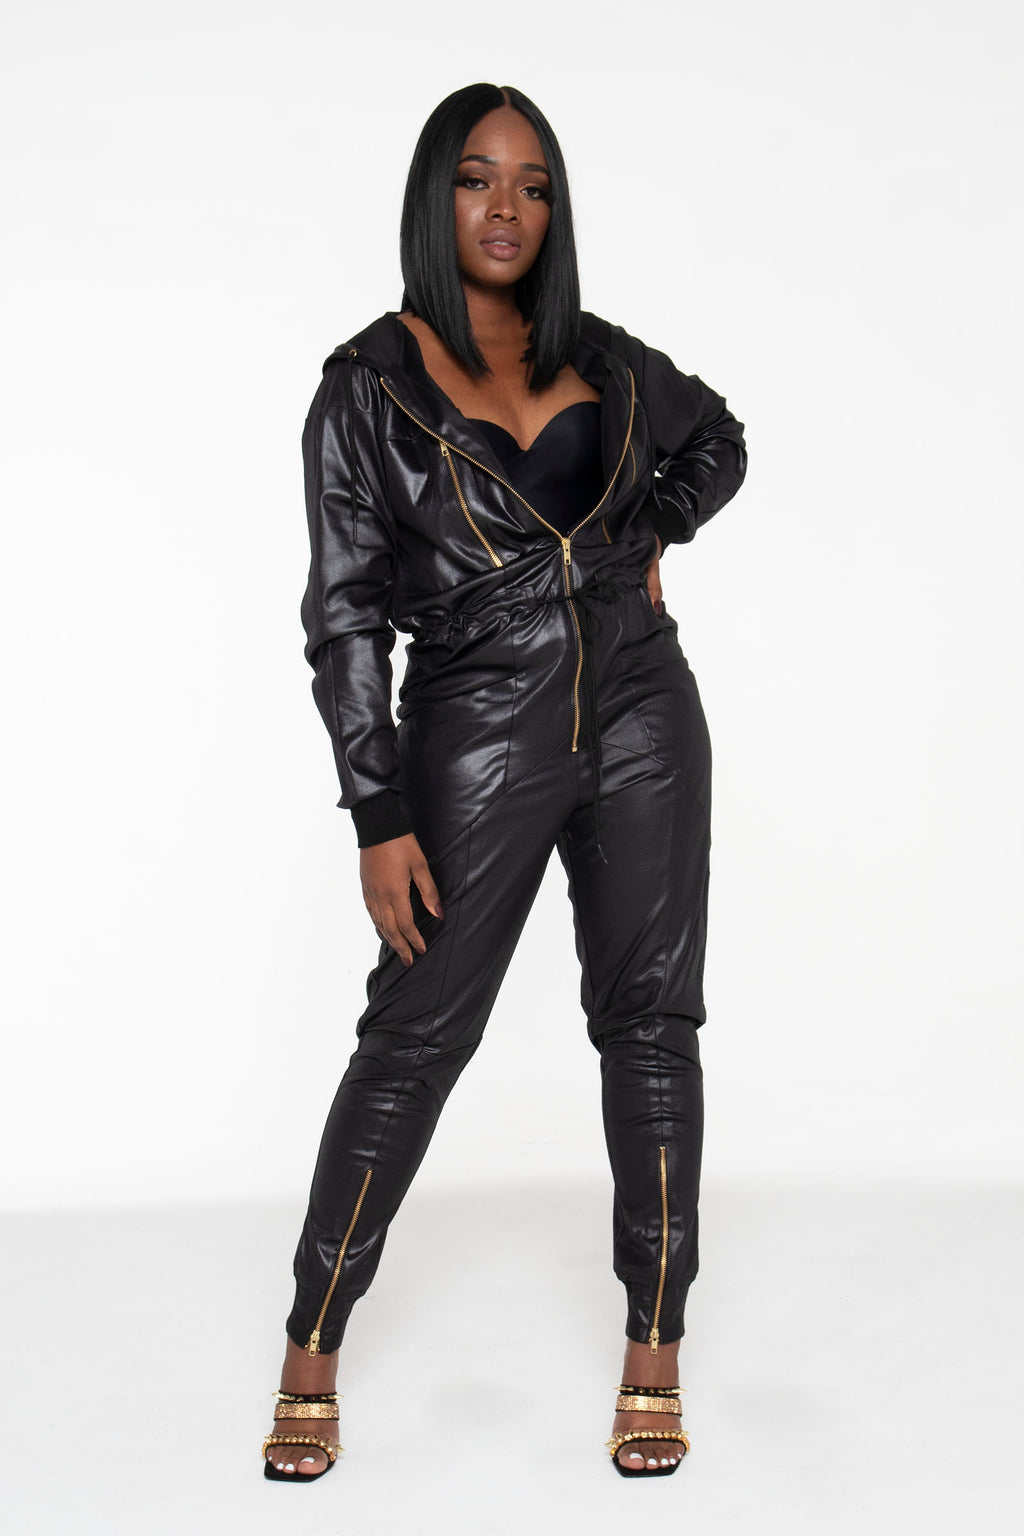 (PRE-ORDER) Black Illusion Leather Unisex Jumpsuit - pacorogiene